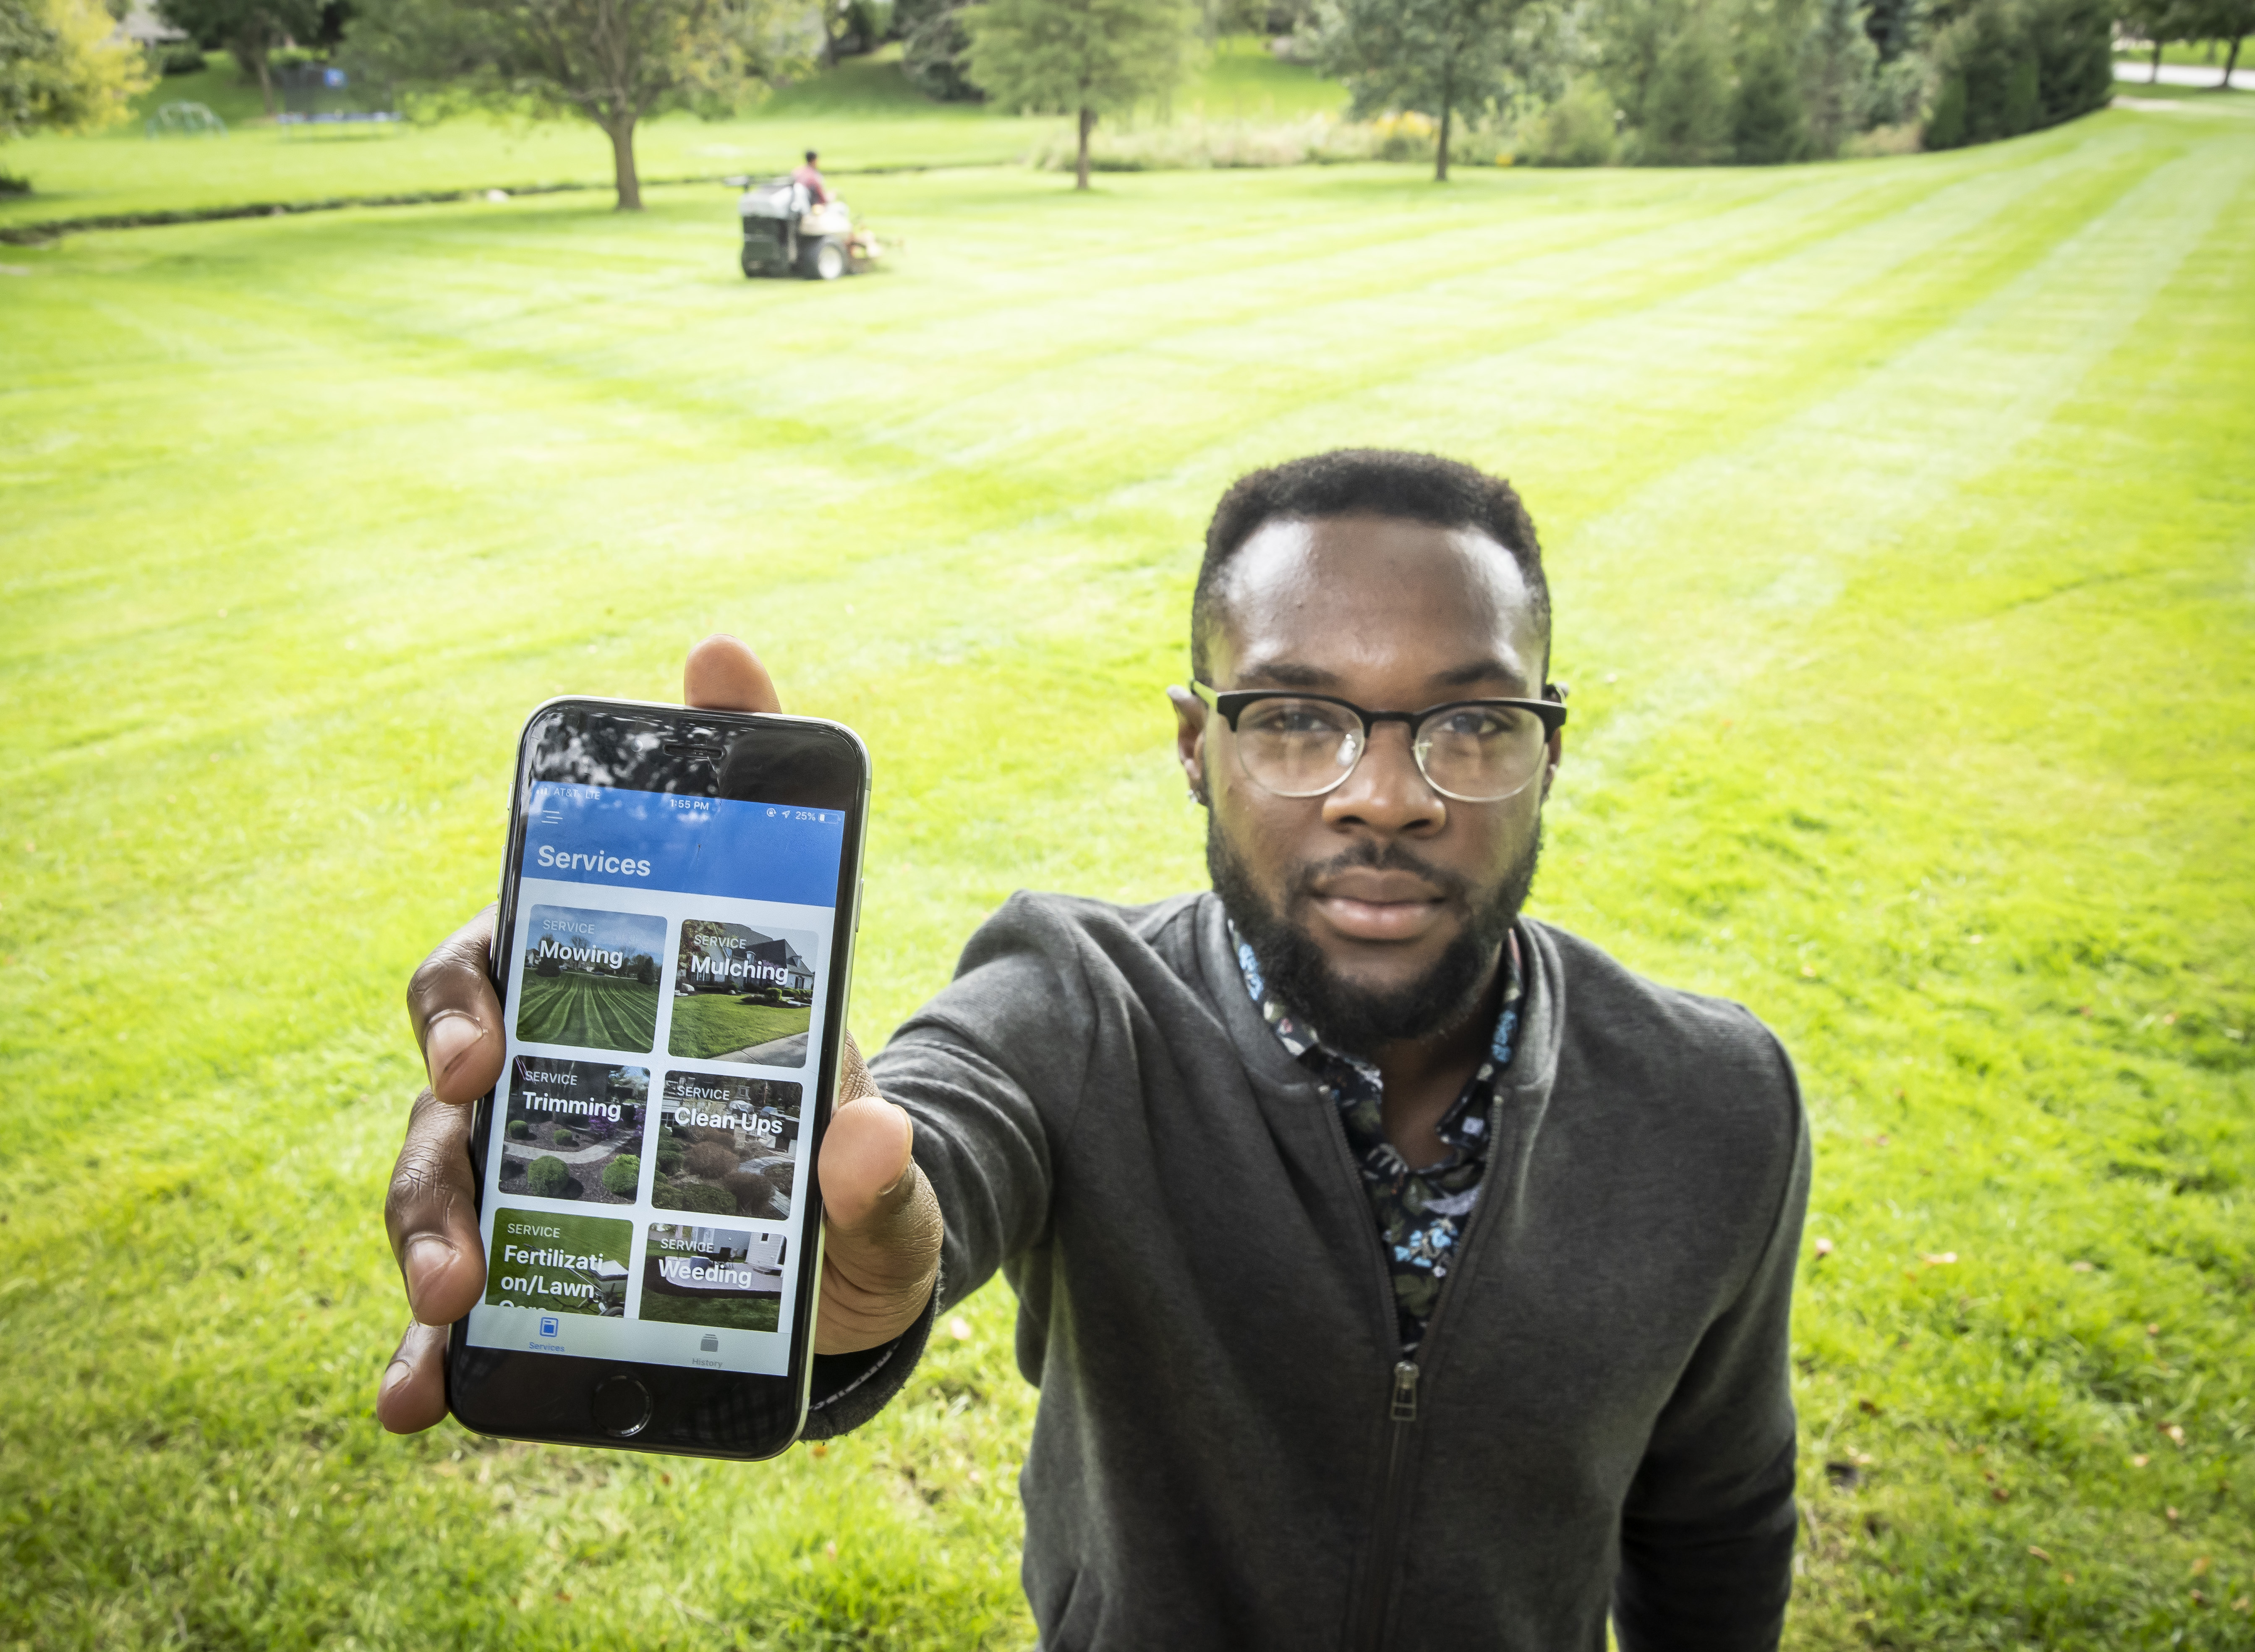 Through the Future Founders program, Moe Mitchell, a 22-year-old North Central College senior, created an Uber-like lawn-care mobile app that helped him run the business more efficiently while making it more convenient for his customers and work crews.